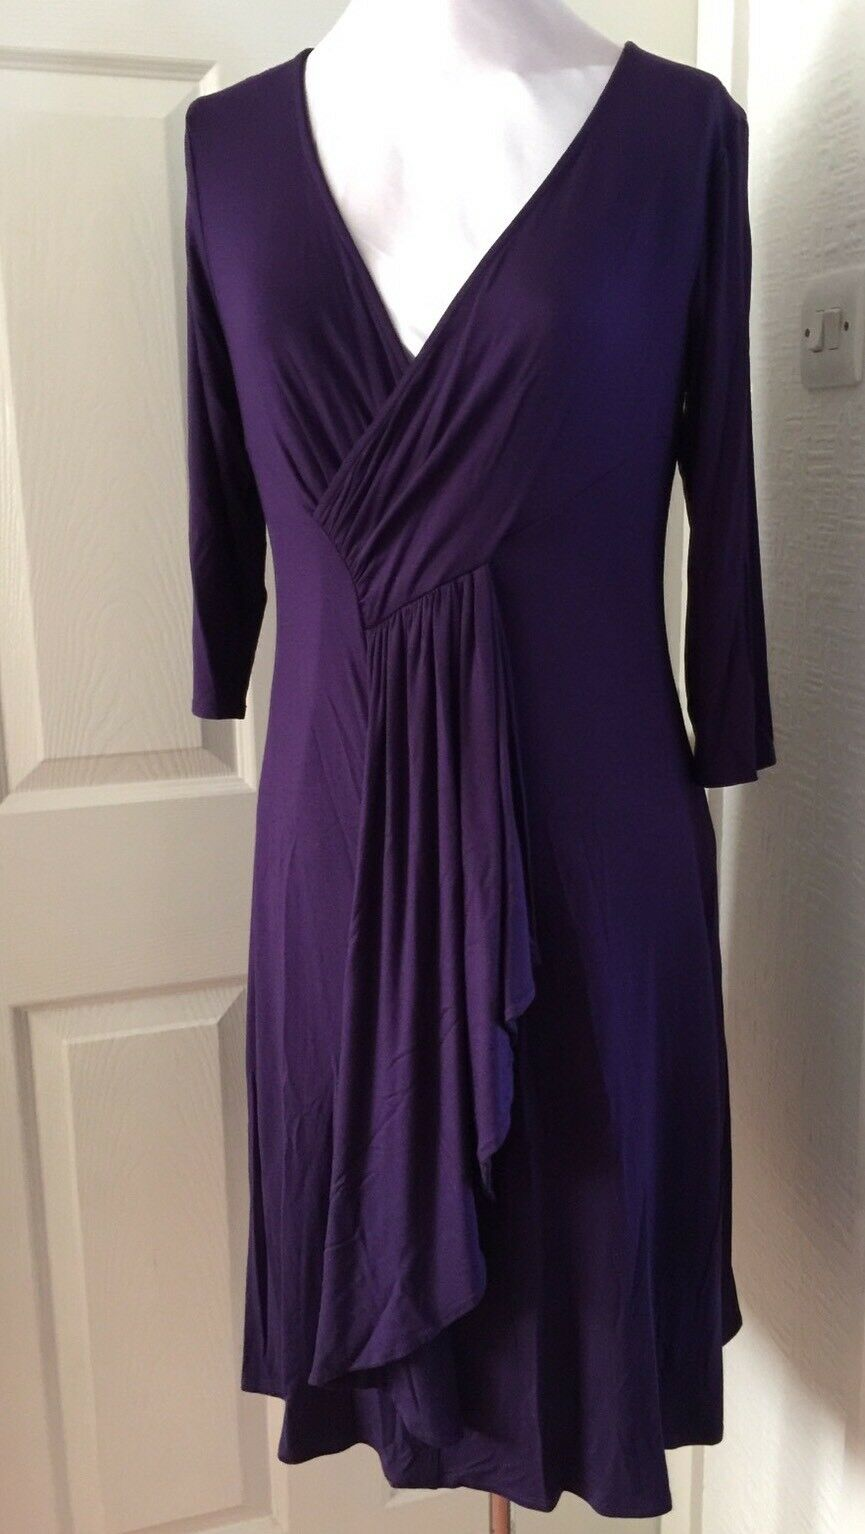 BNWT Phase Eight  8 Marcia Grape Jersey Dress Größe 16